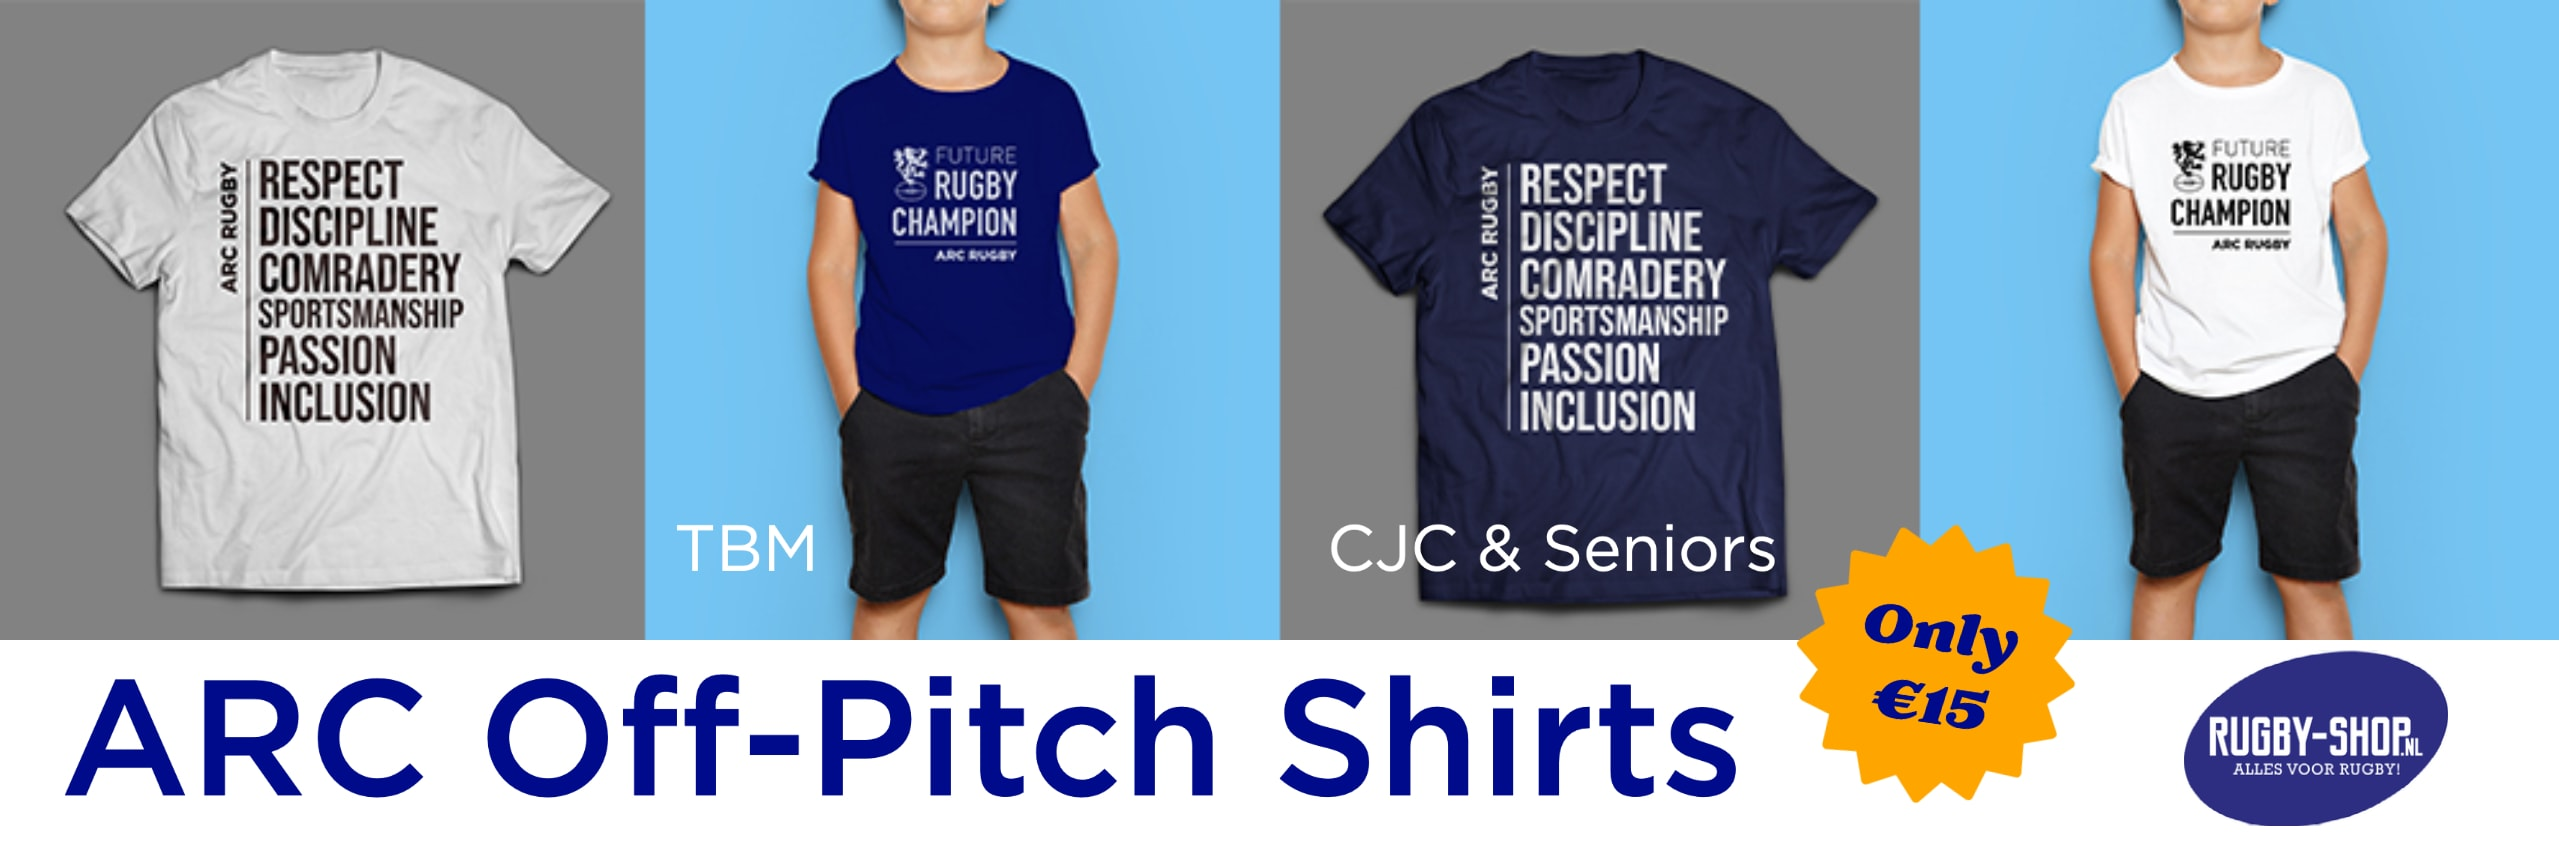 order your ARC Club Values shirt now